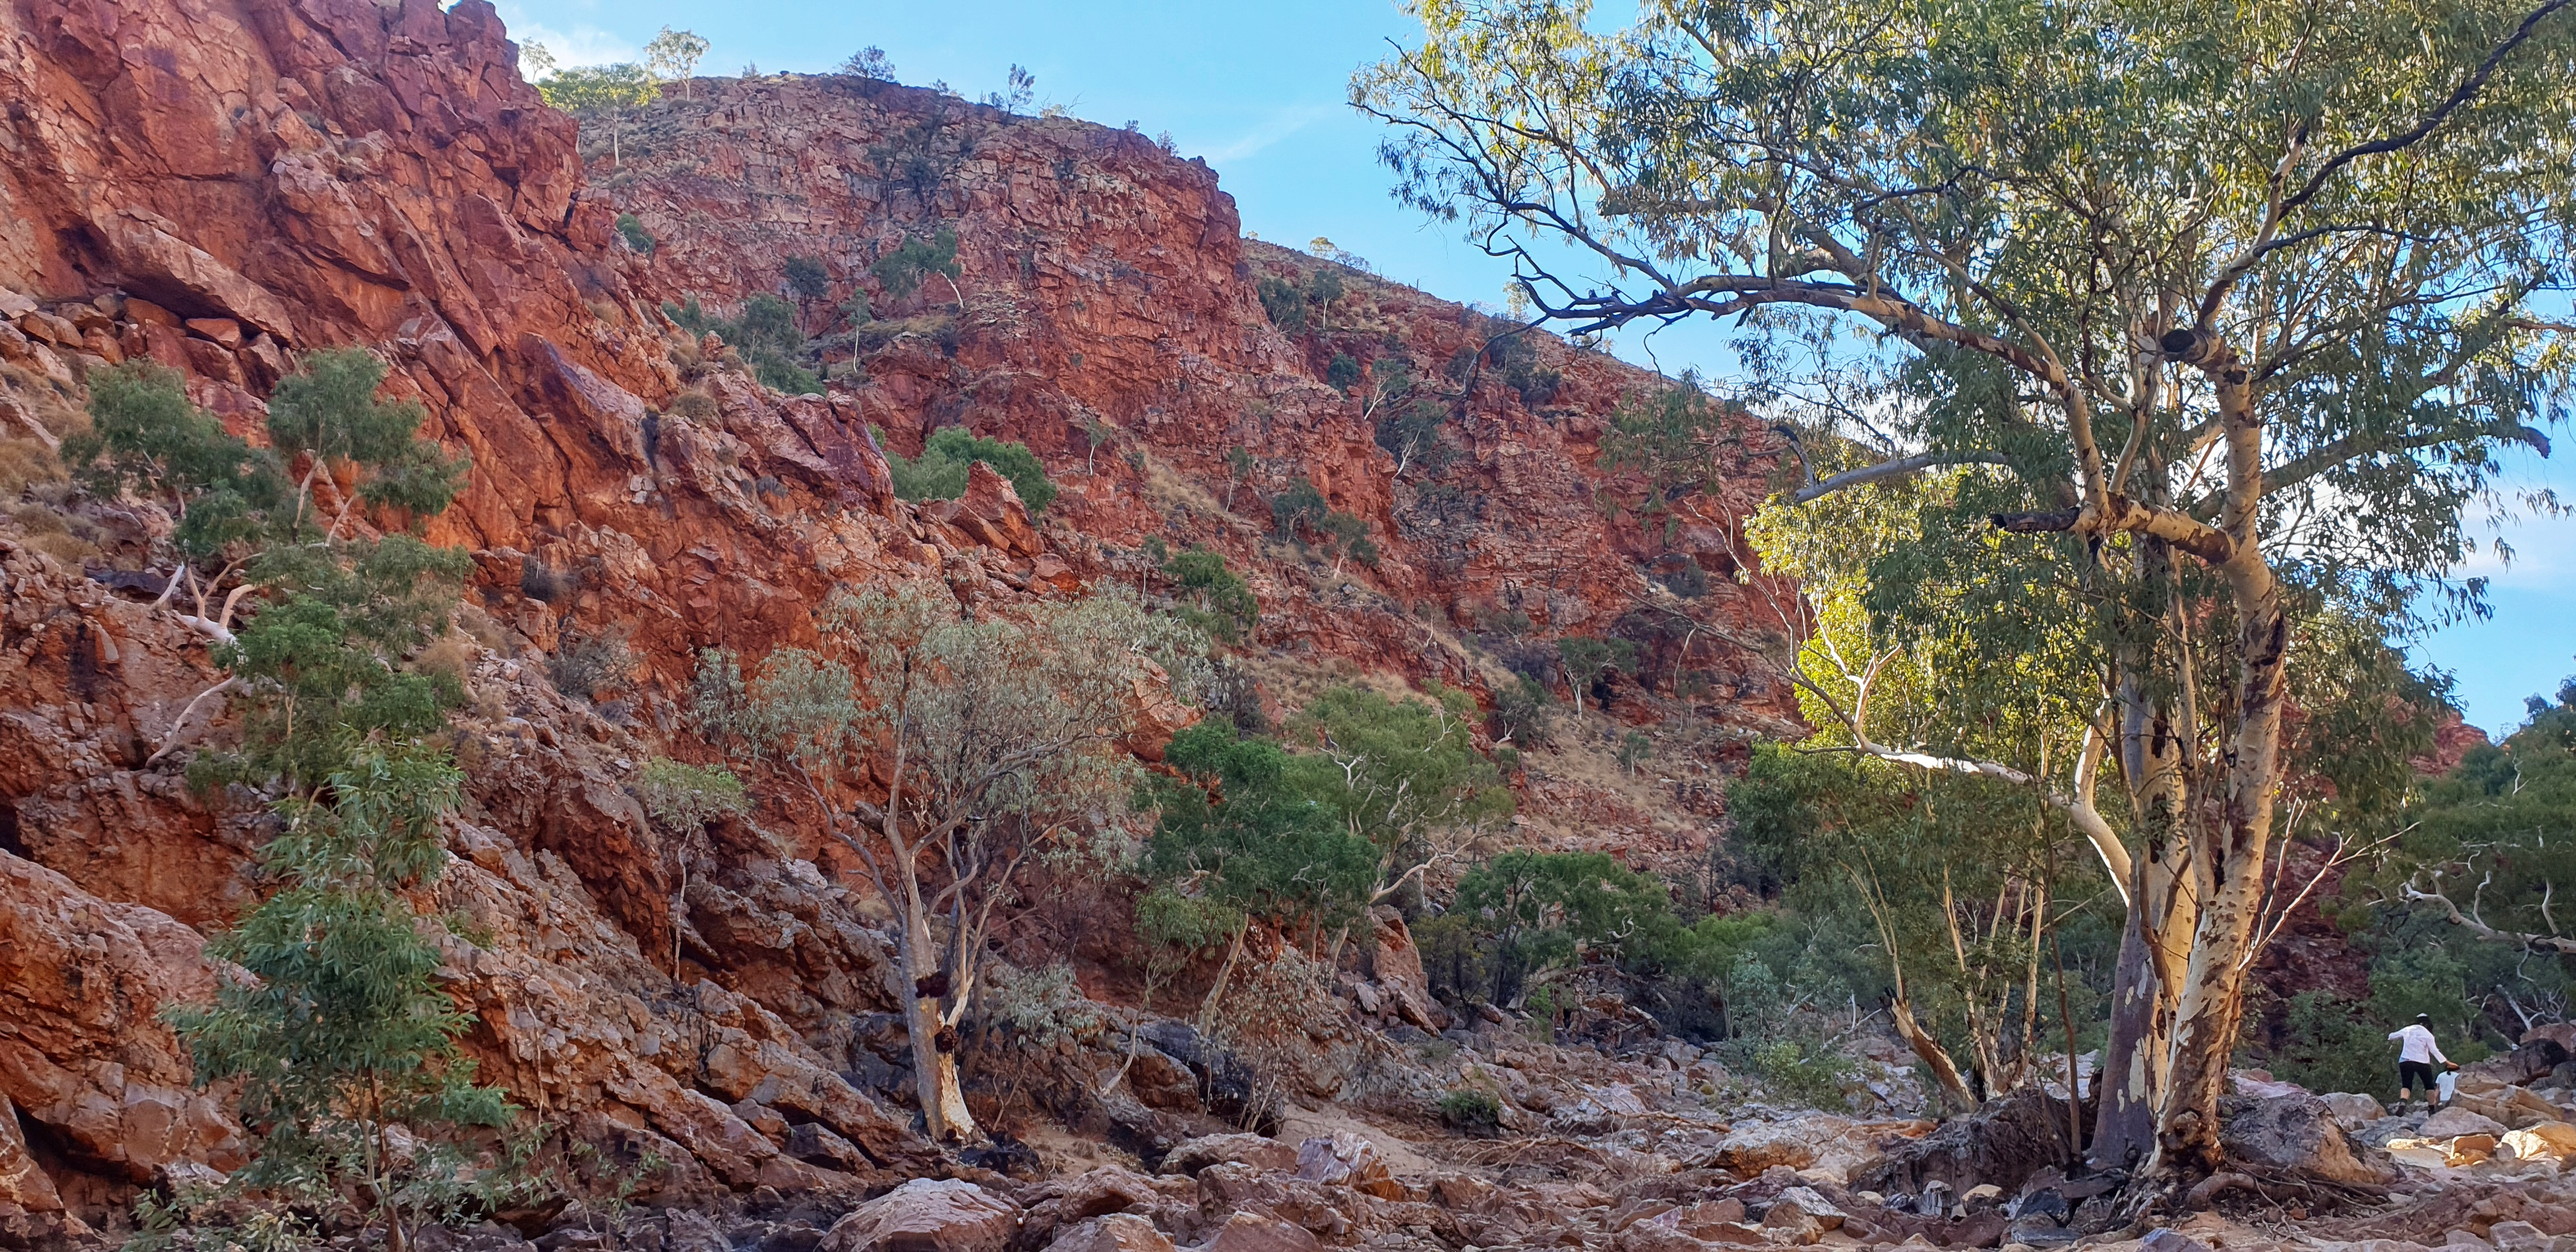 The red rocks of the West MacDonnell Ranges during the hike to Red Bank Gorge